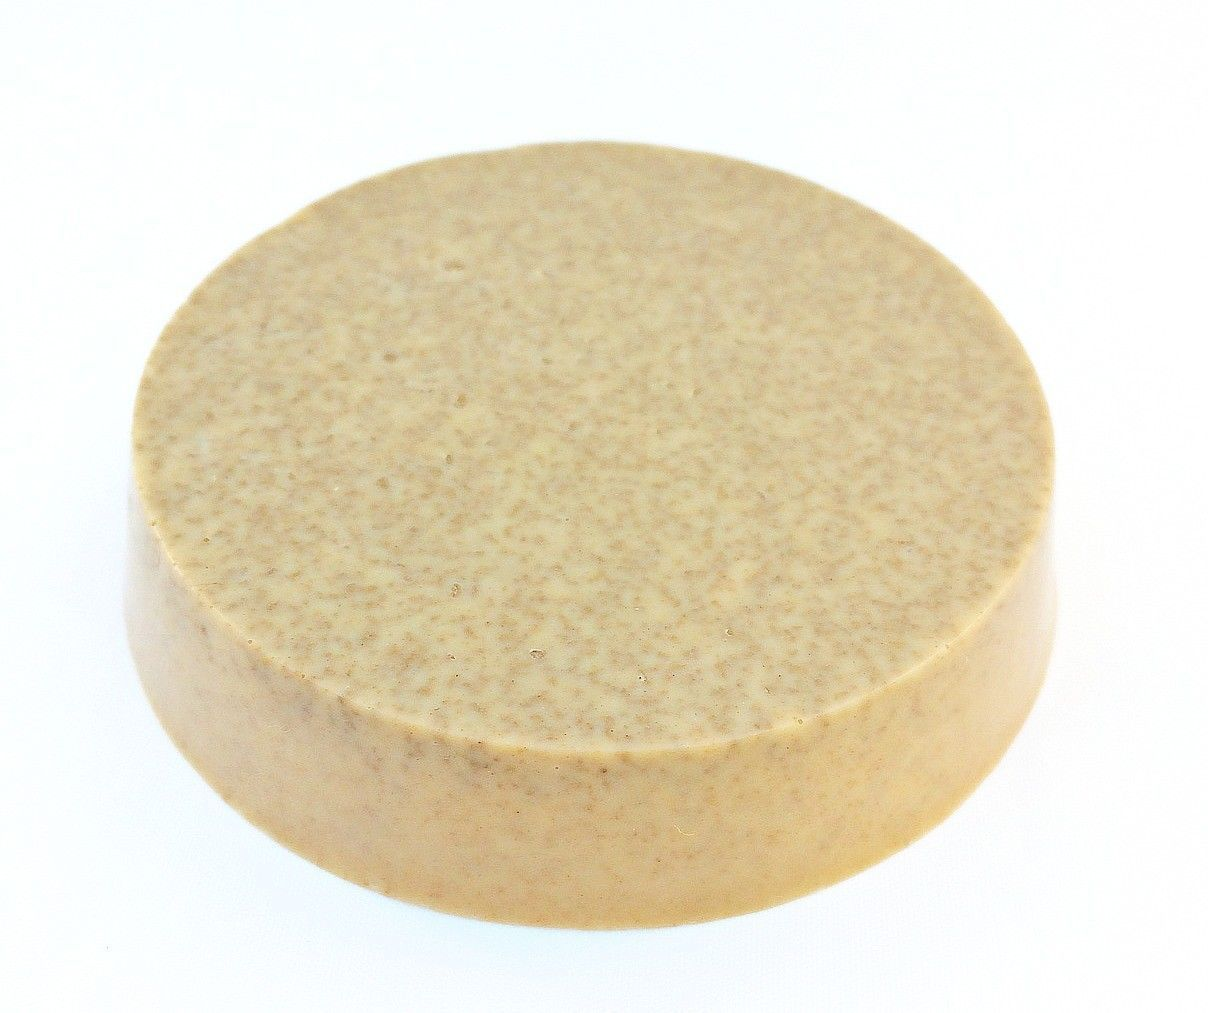 Feminine Soap Wash Intimate, Vaginal Itch yeast infection odor all NATURAL